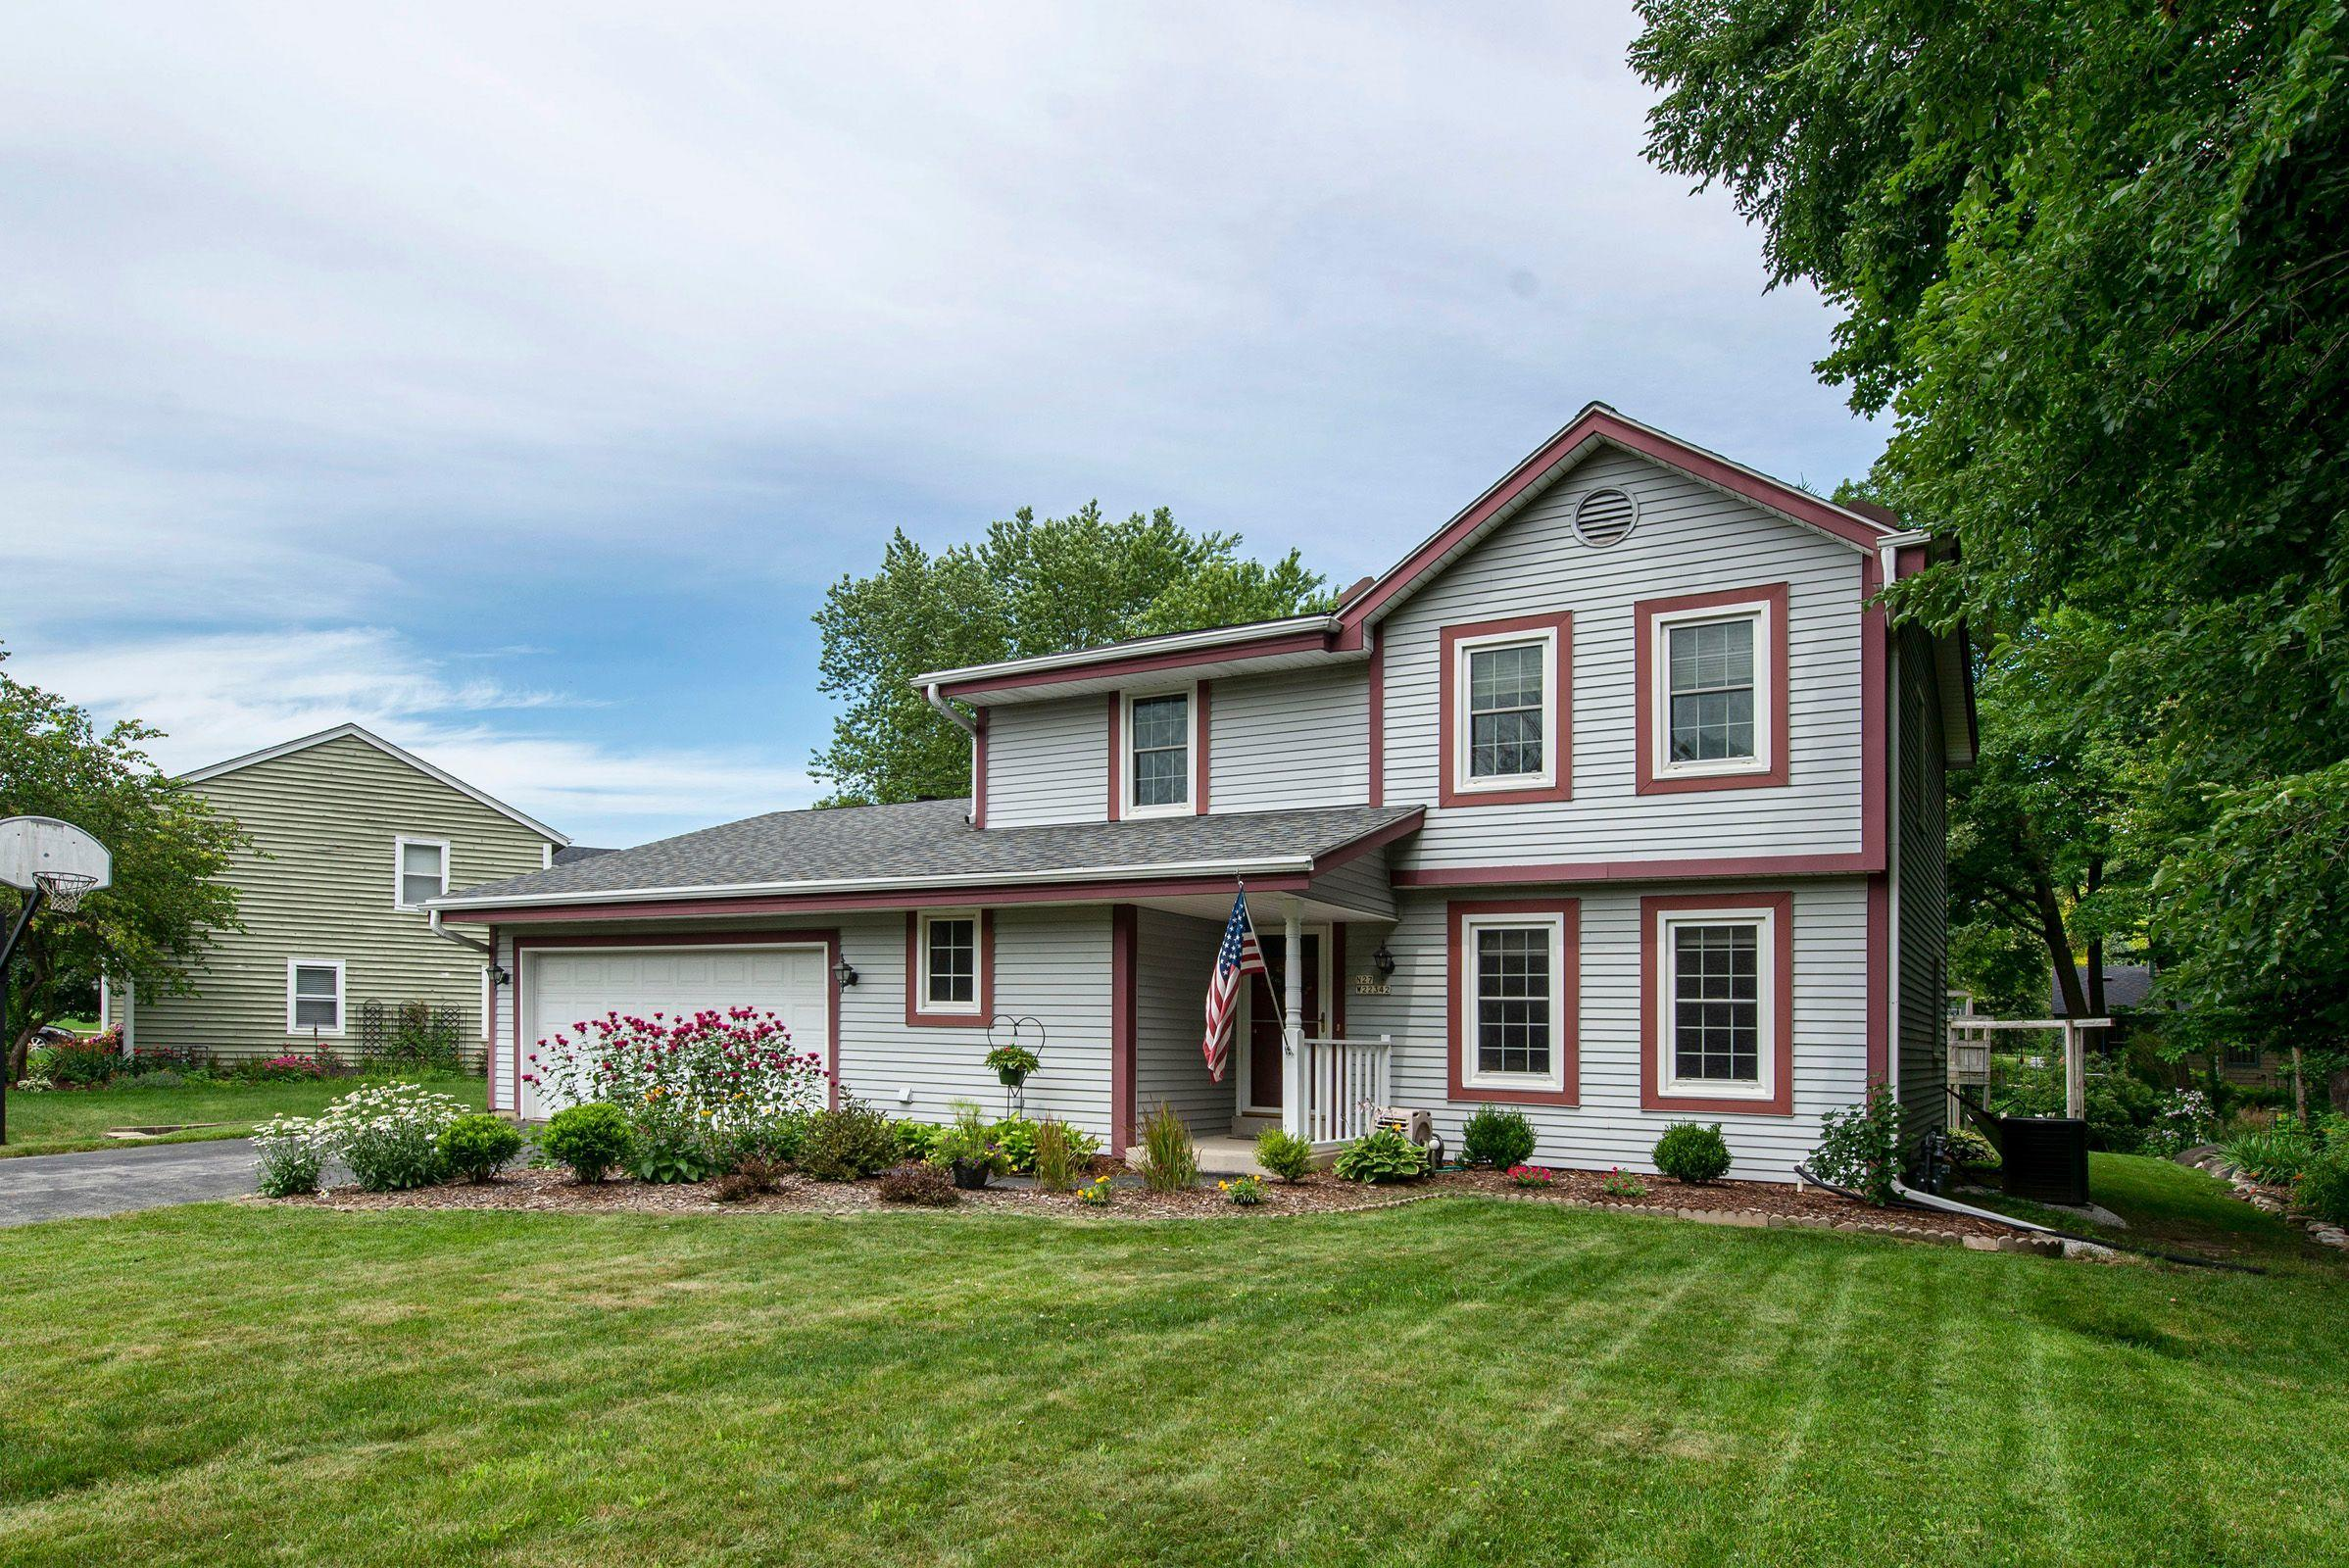 N27W22342 Stonewood Ln, Pewaukee, Wisconsin 53186, 3 Bedrooms Bedrooms, 8 Rooms Rooms,1 BathroomBathrooms,Single-Family,For Sale,Stonewood Ln,1700594